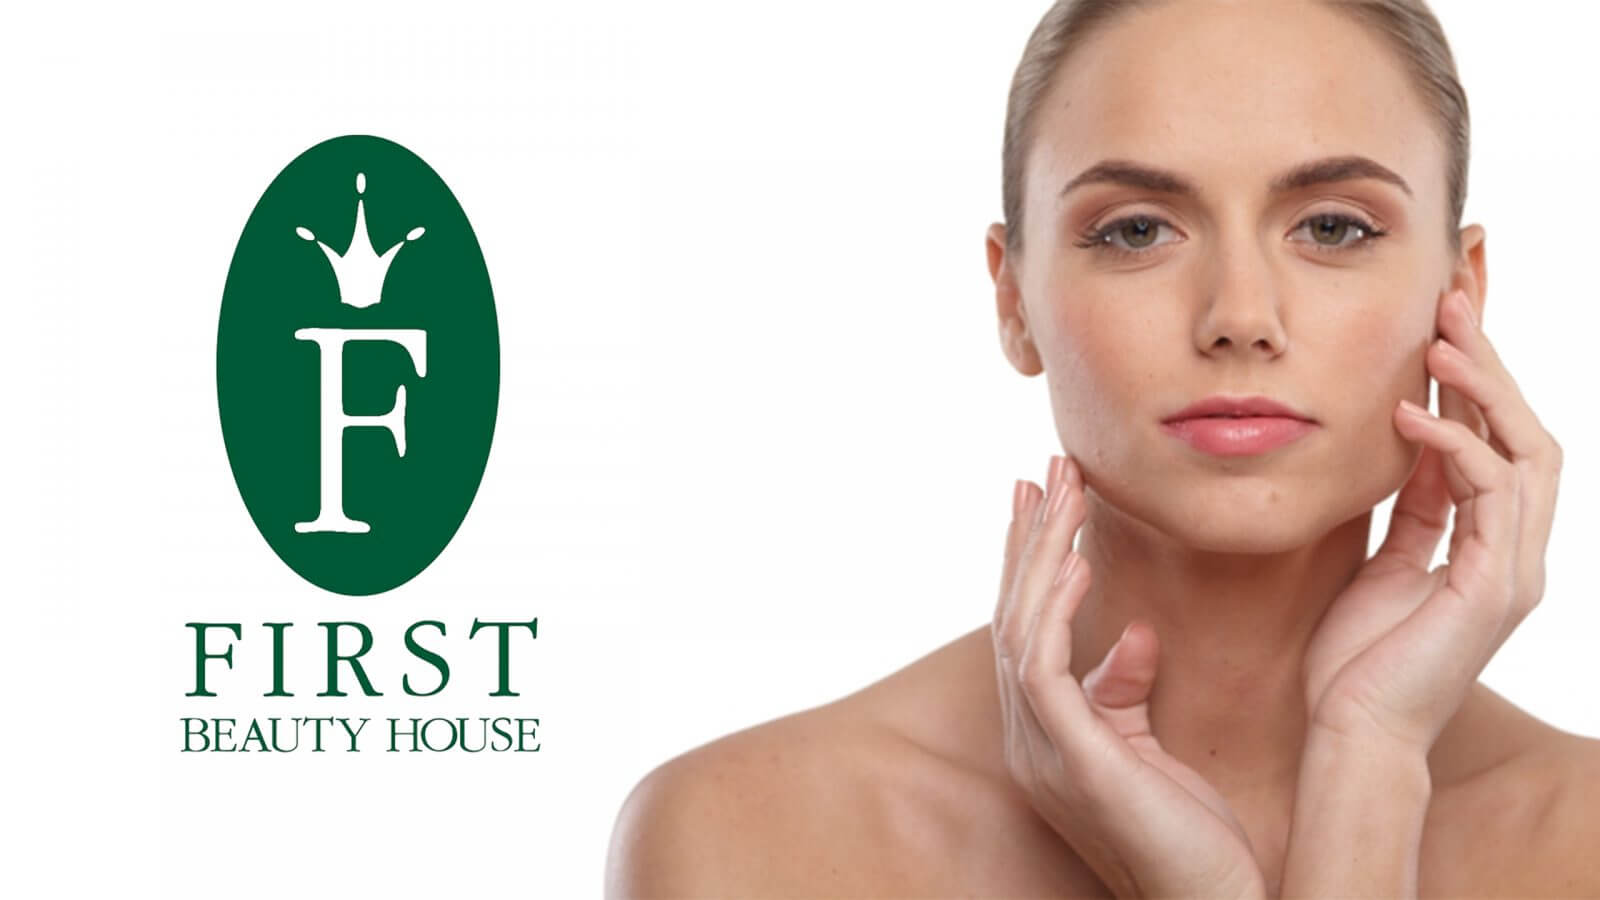 FIRST BEAUTY HOUSE MAIN IMAGE